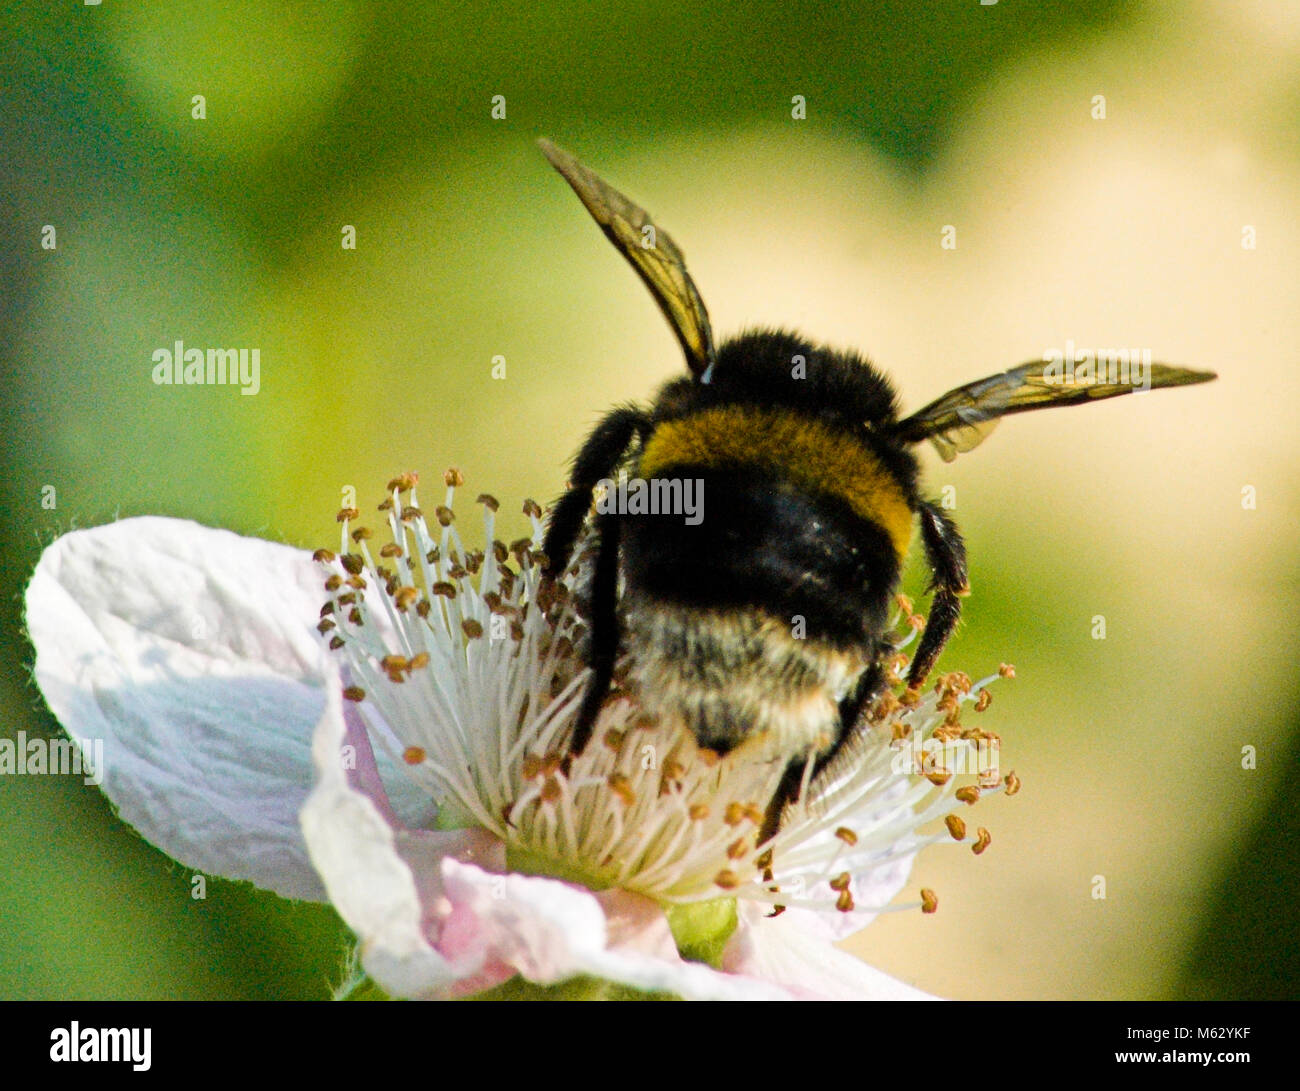 Bumble Bee on a flower - Stock Image